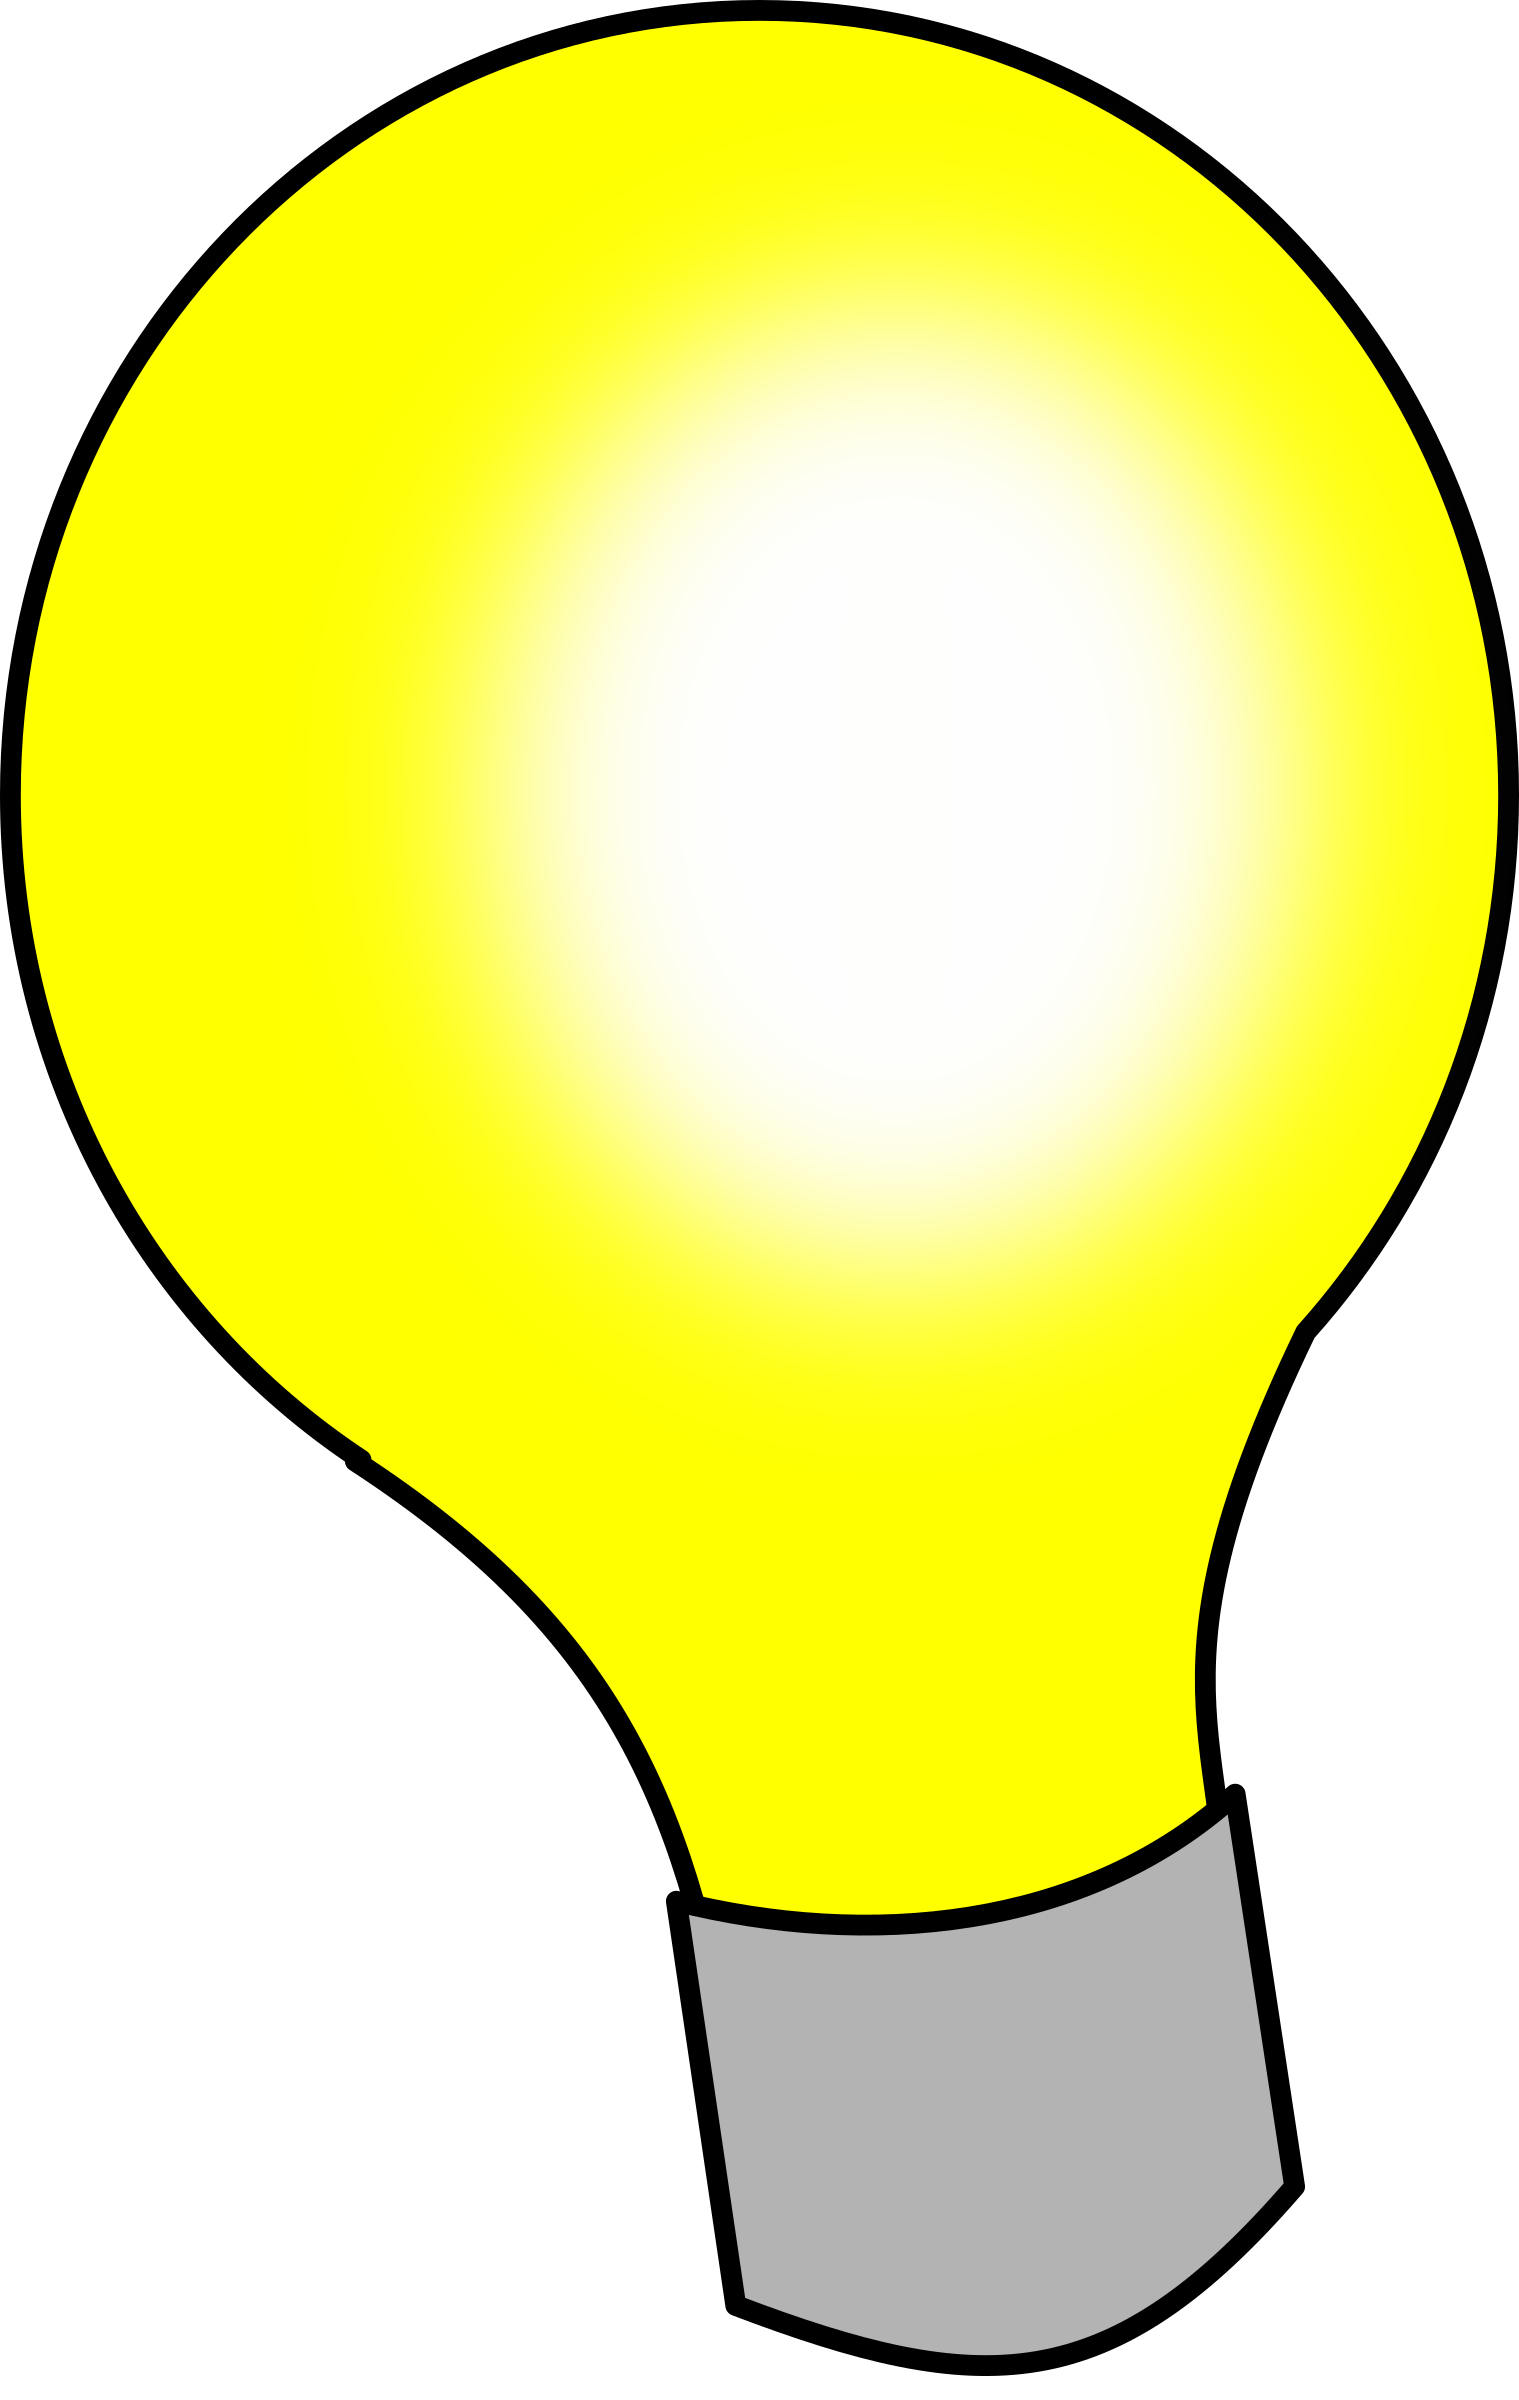 Light Bulb With Images